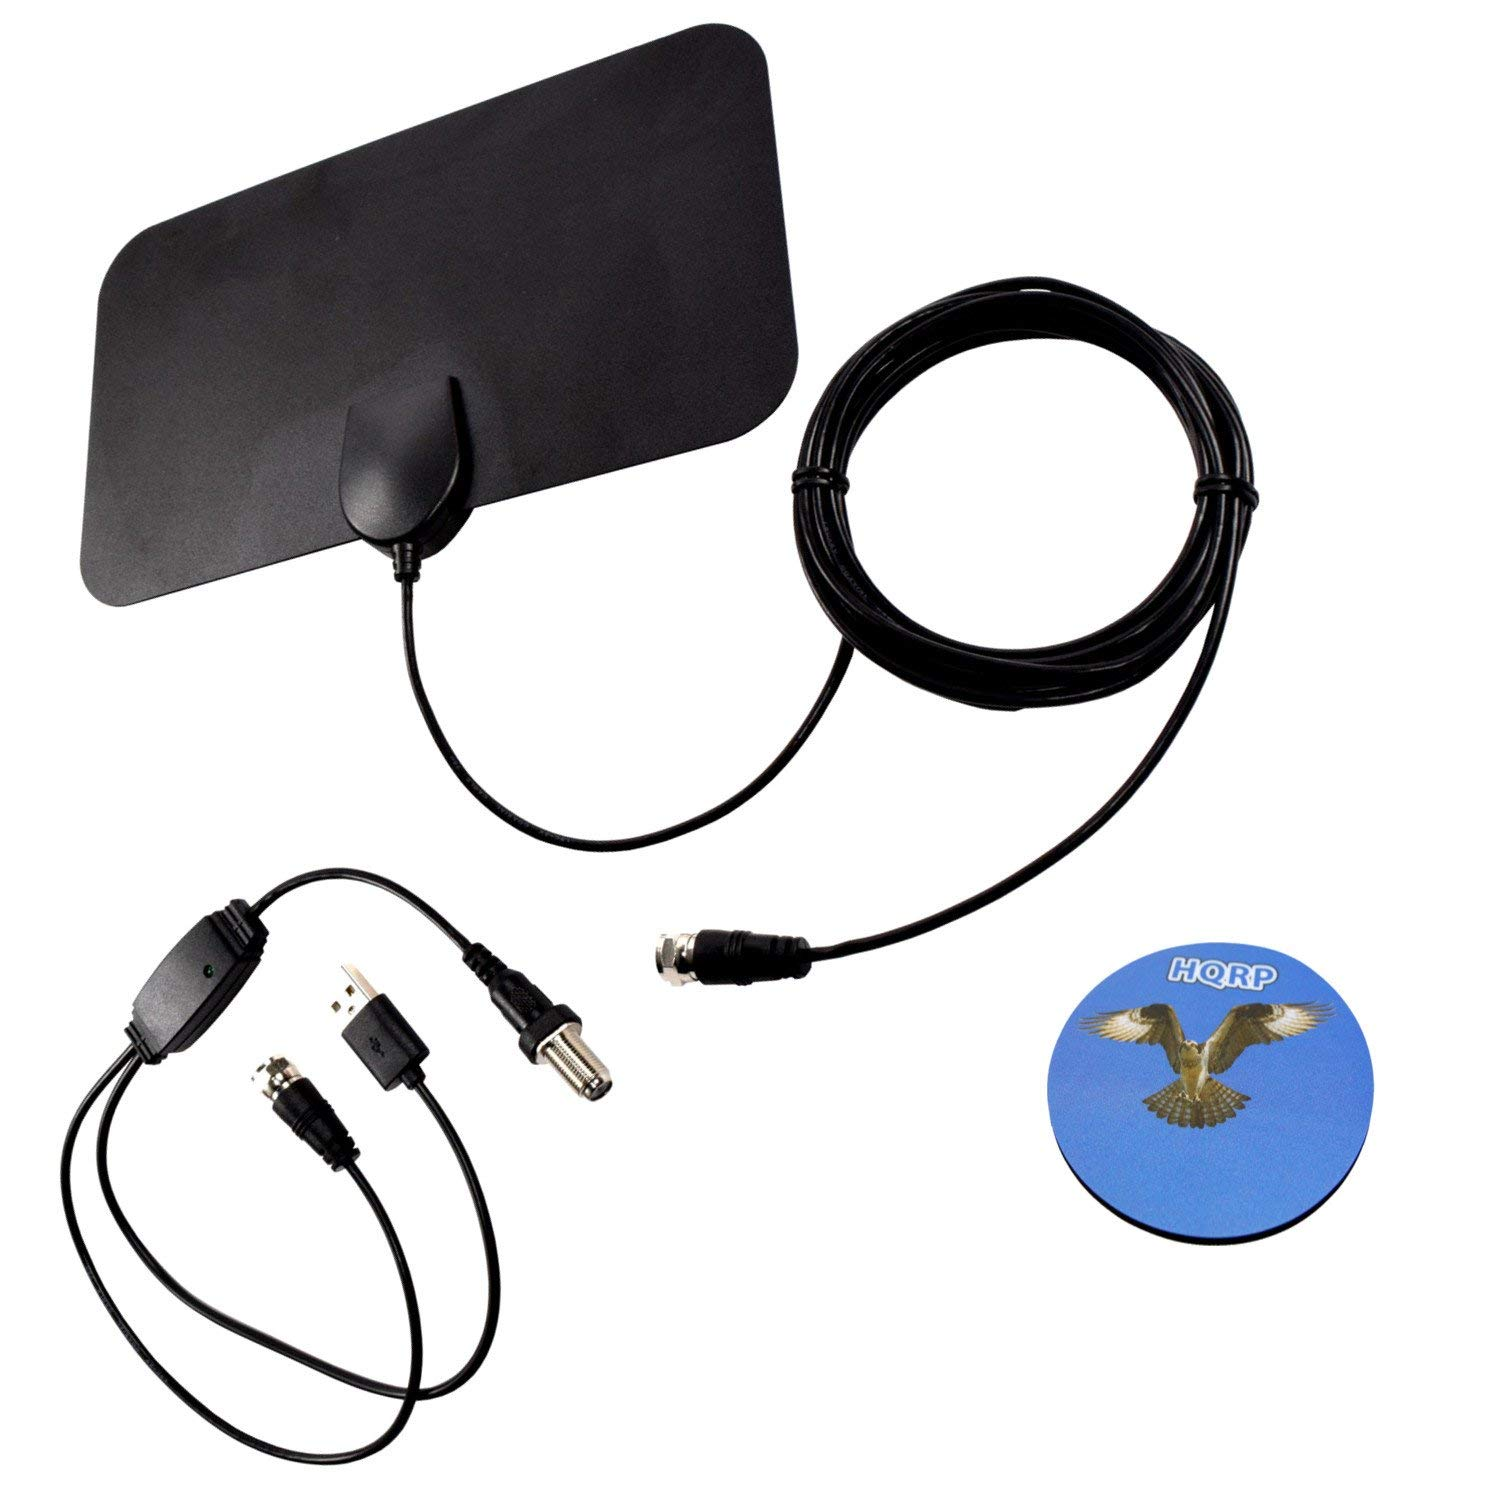 HQRP HDTV Amplified 4K 1080p 35-50 Miles Antenna for Sharp LC-50Q7000U, LC-55N7000U, LC-60LE920UN, LC-60N5100U, LC-60UD27U, LC-65LE654U, LC-70SQ15U, LC-70UE30U, LC-80LE650U, LC-90LE657U